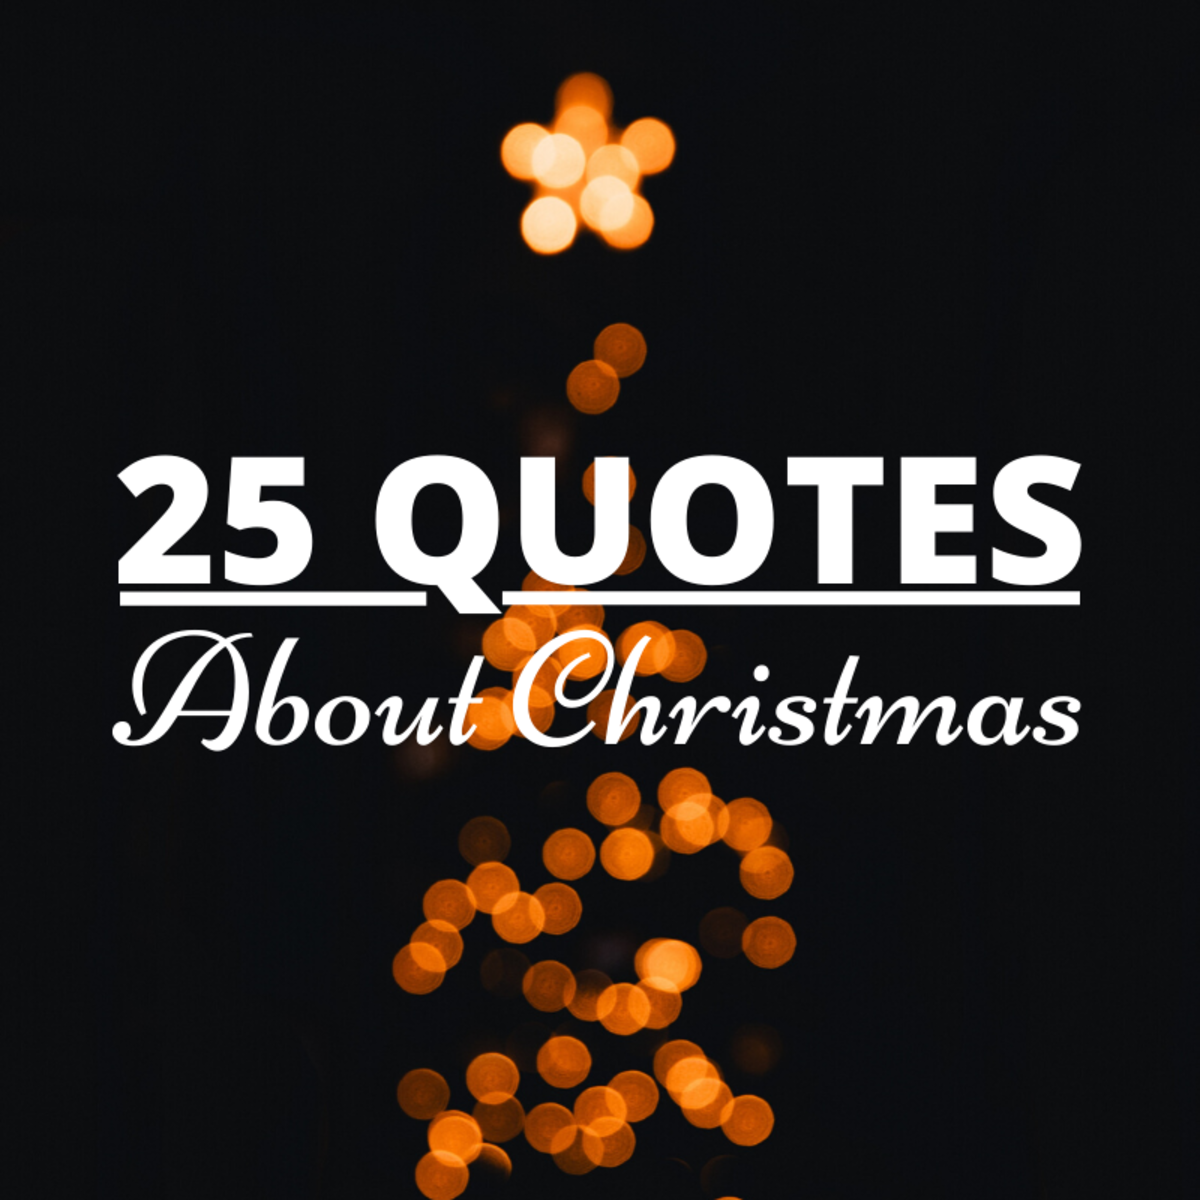 Funny, Sincere, and Unique Quotations About Christmas